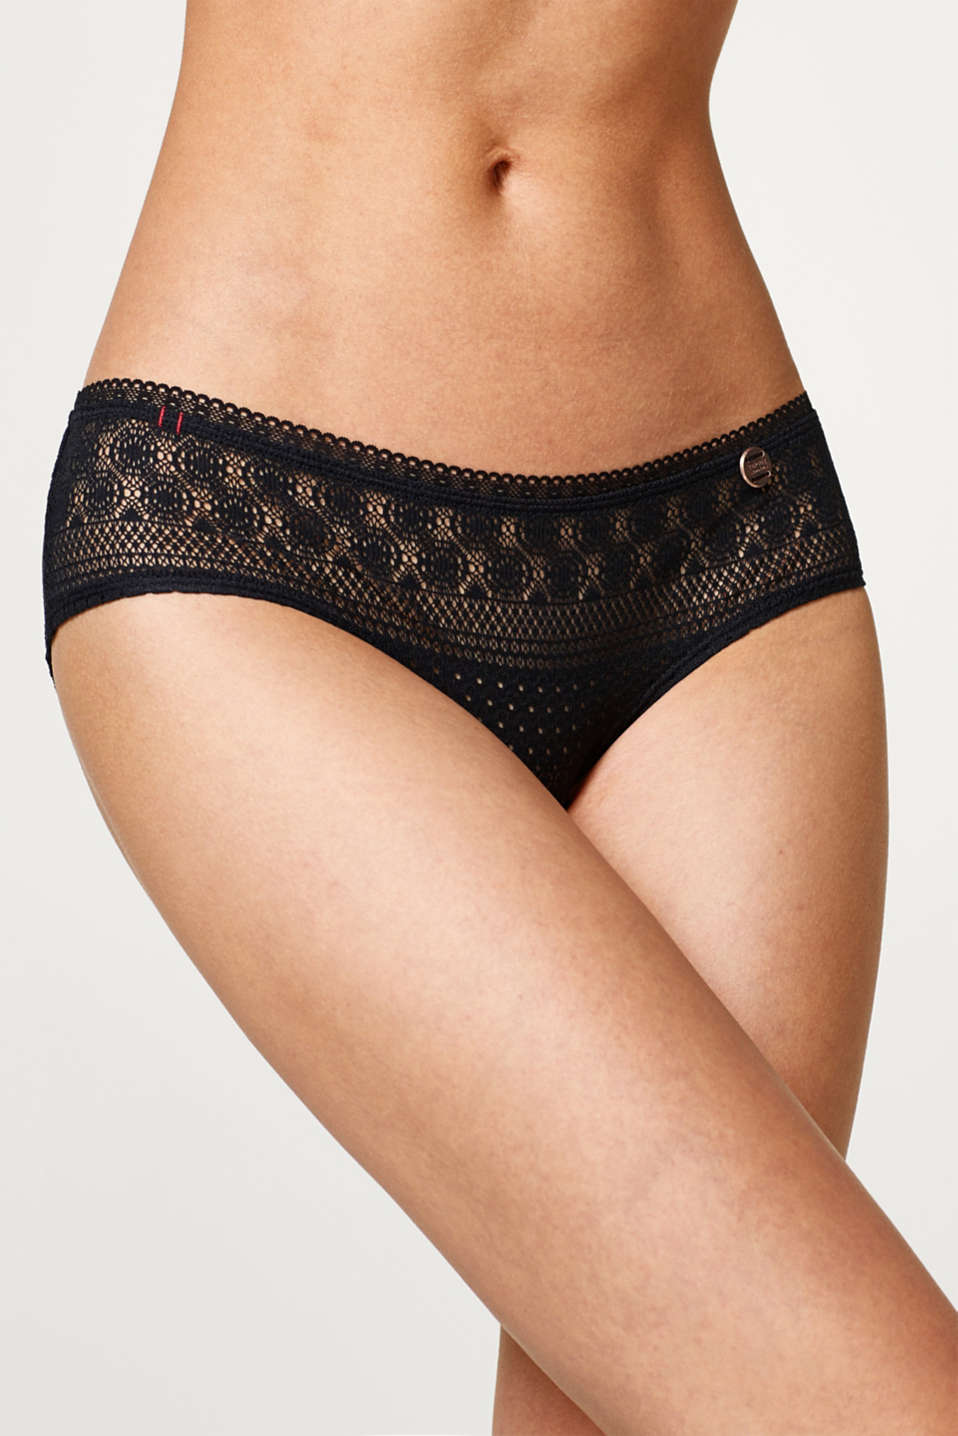 Hipster shorts, openwork pattern and lace